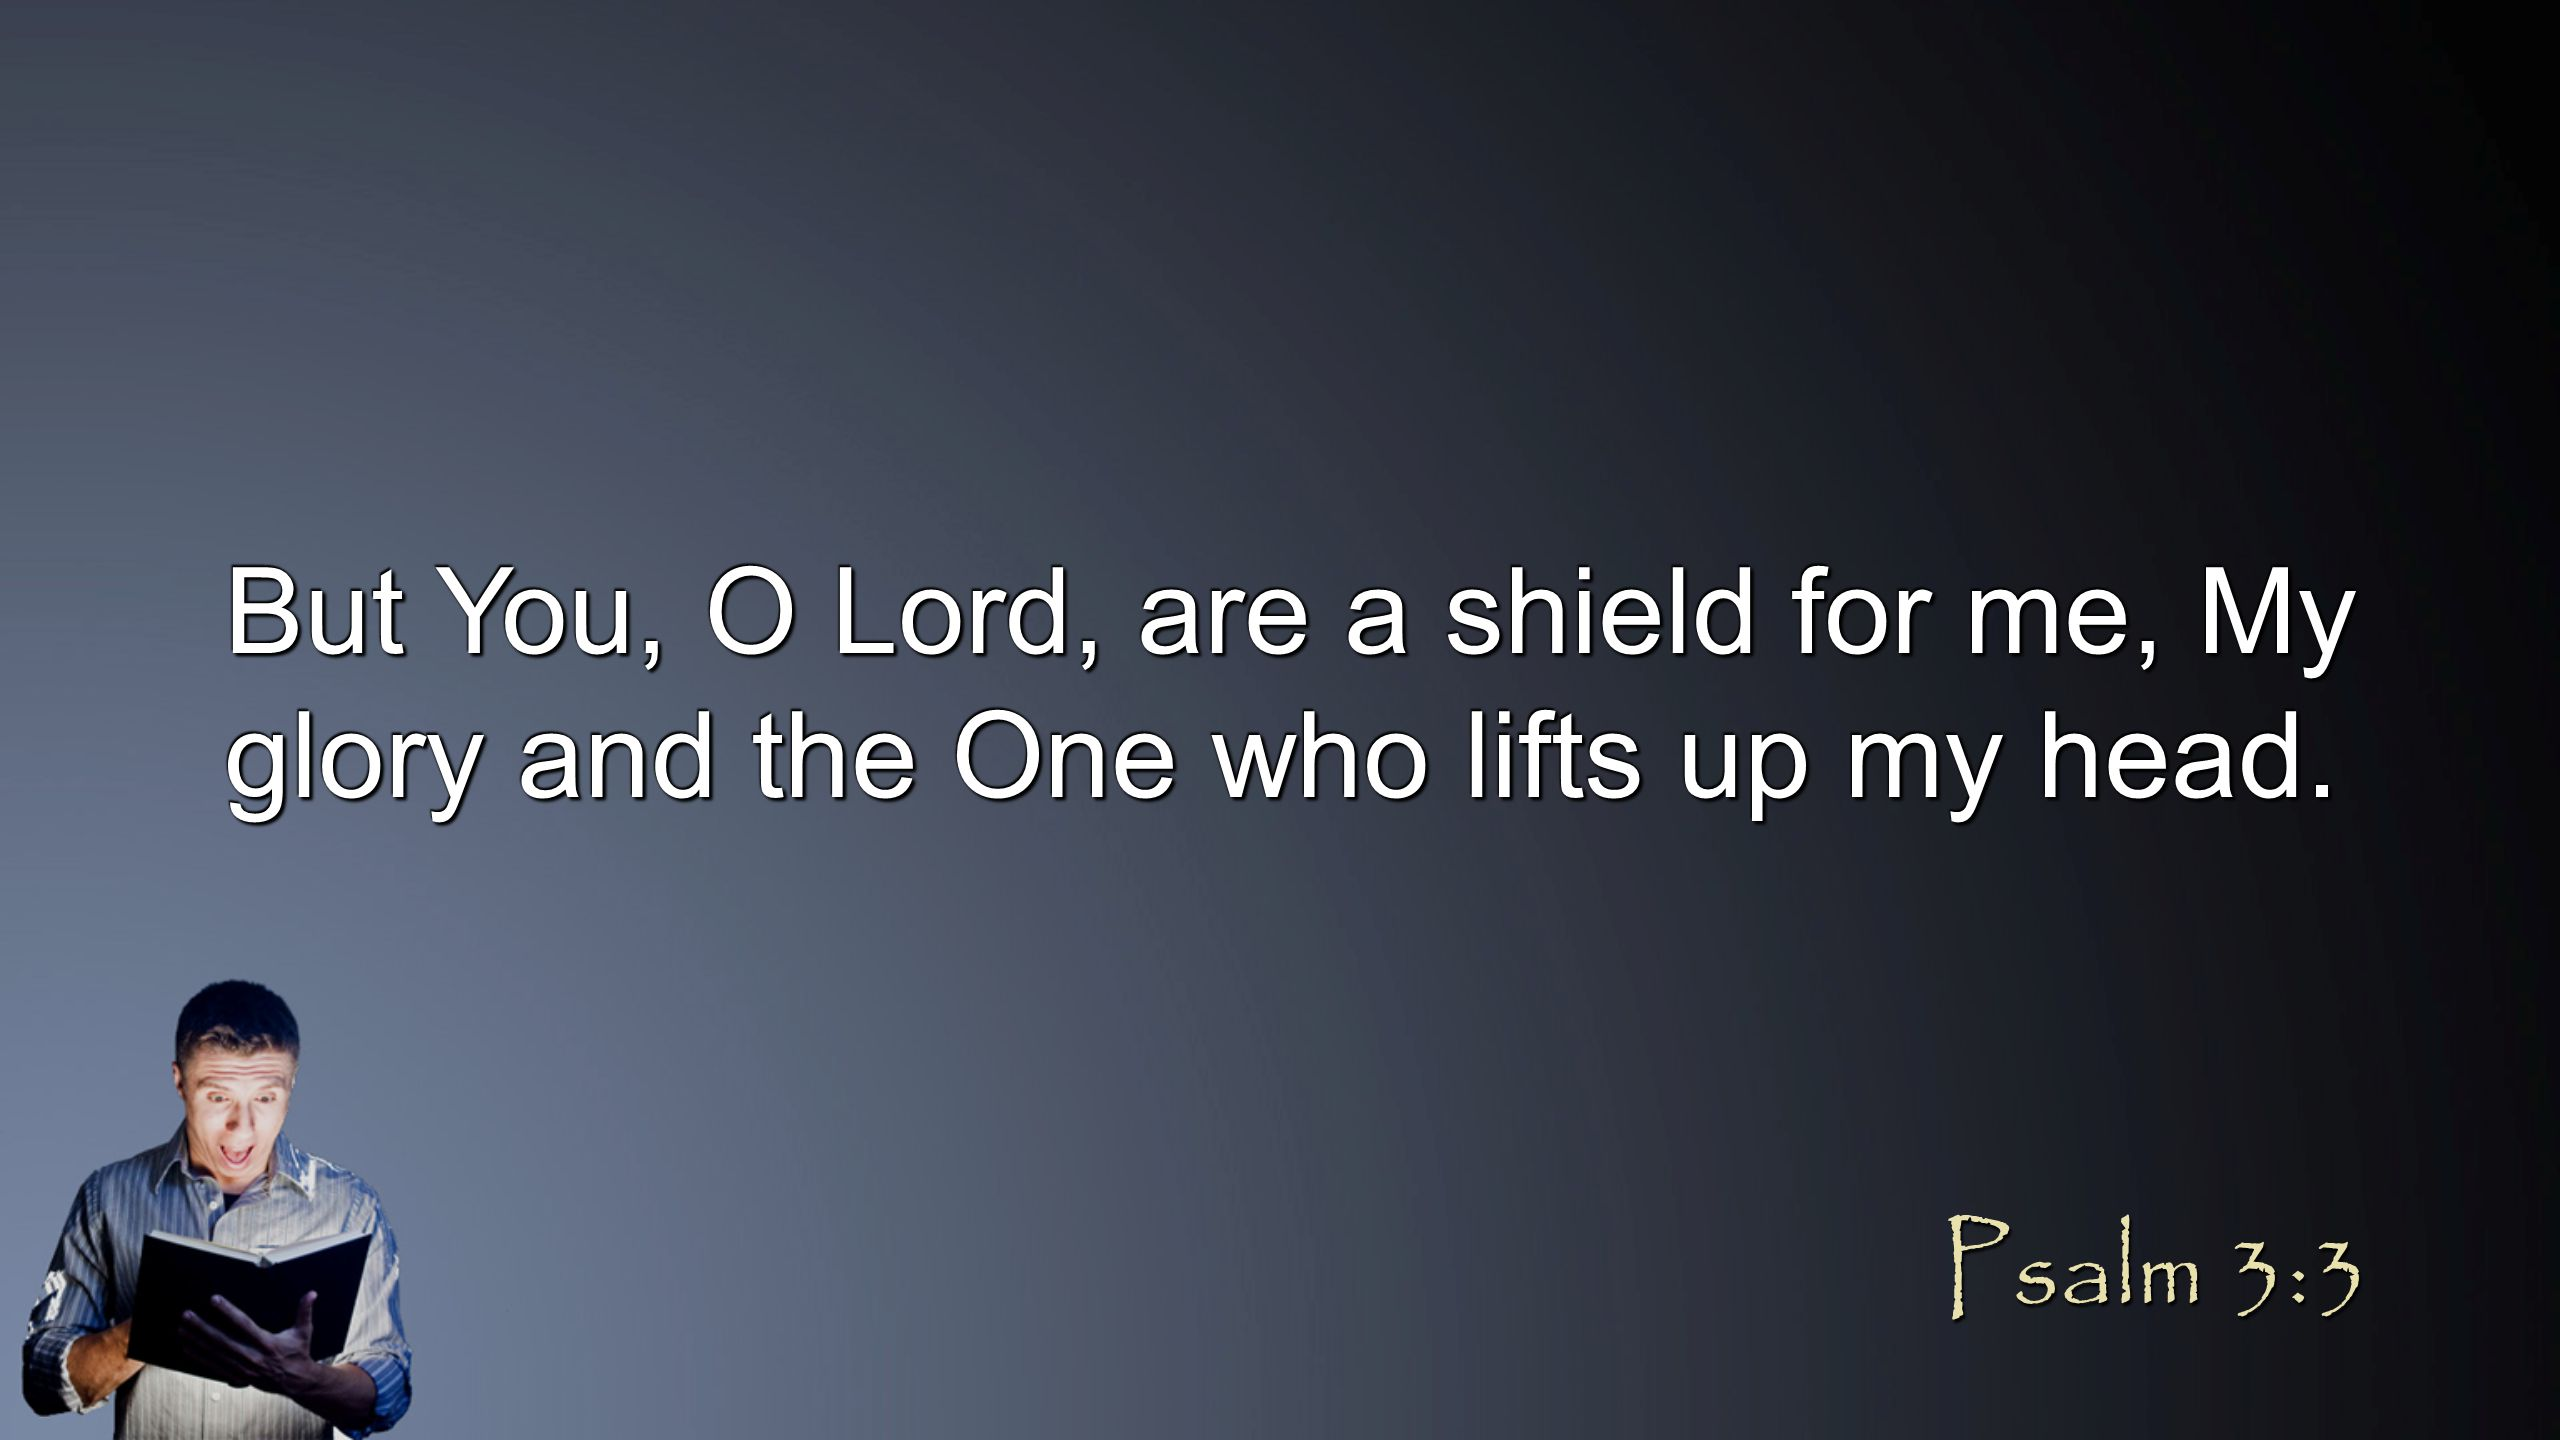 But You, O Lord, are a shield for me, My glory and the One who lifts up my head. Psalm 3:3